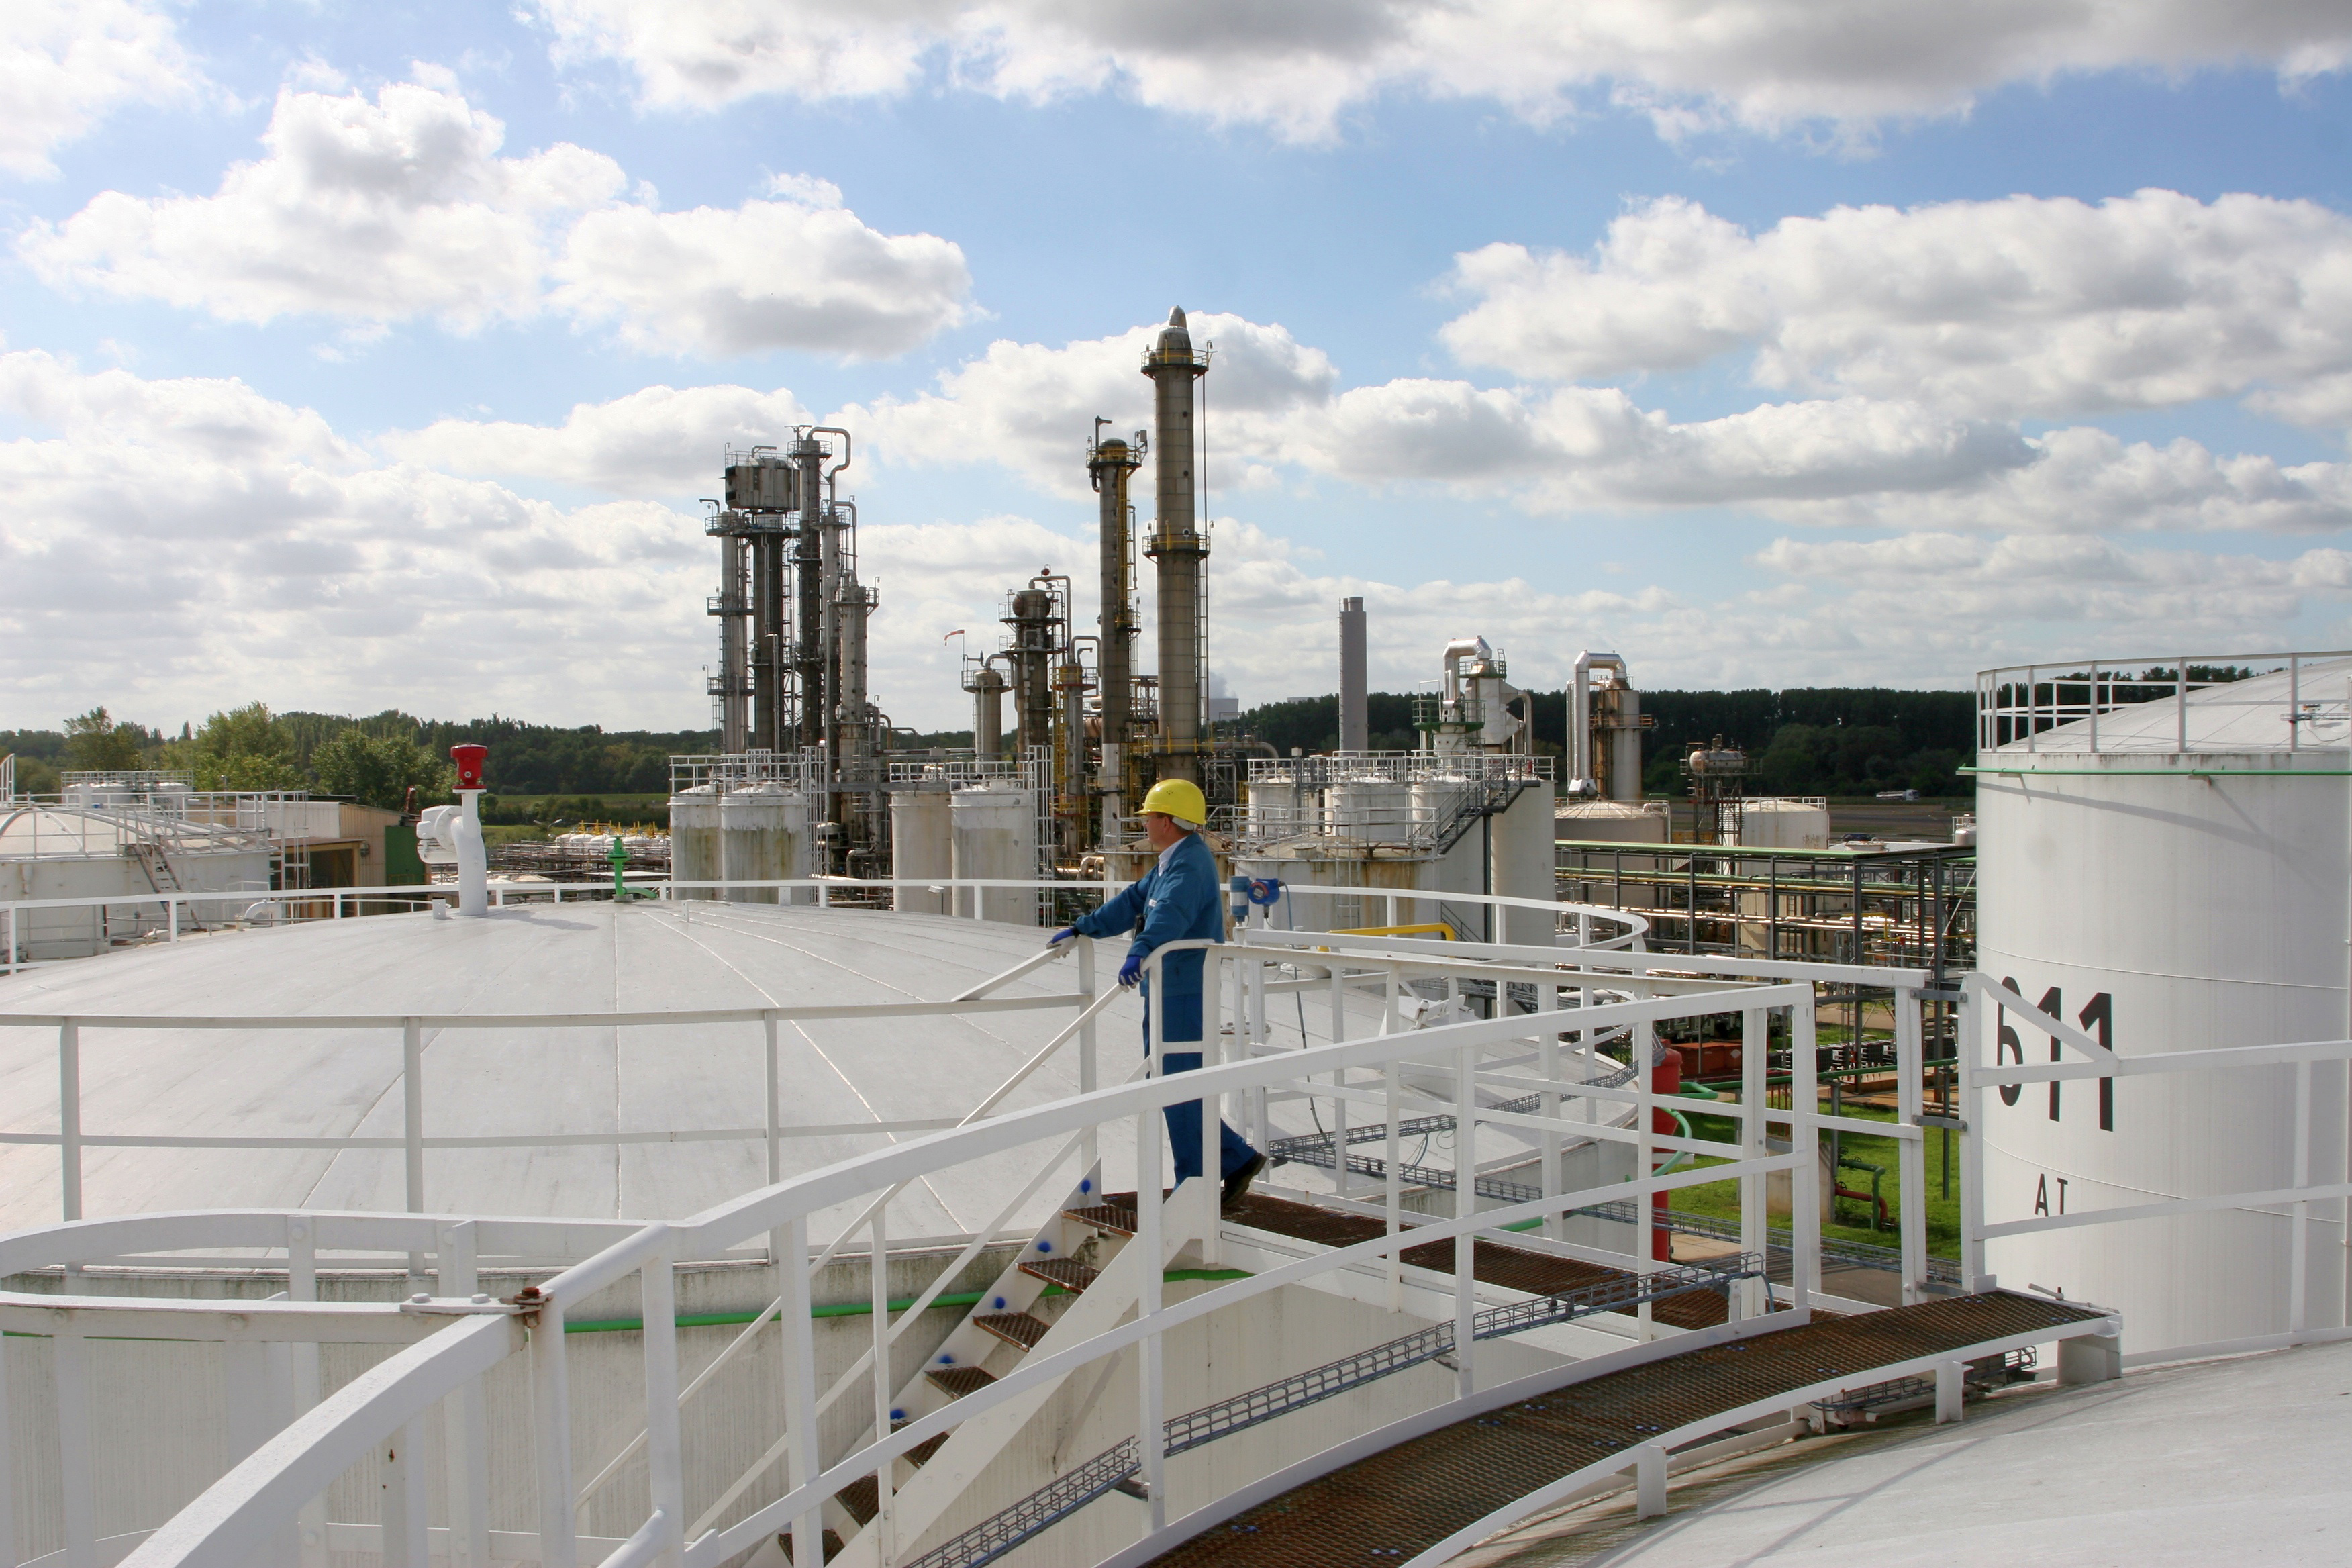 With the completion of the new hydrogenation plant at the German site in Speyer, Haltermann Carless will become one of the largest cyclopentane producers worldwide. (Source: Haltermann Carless)